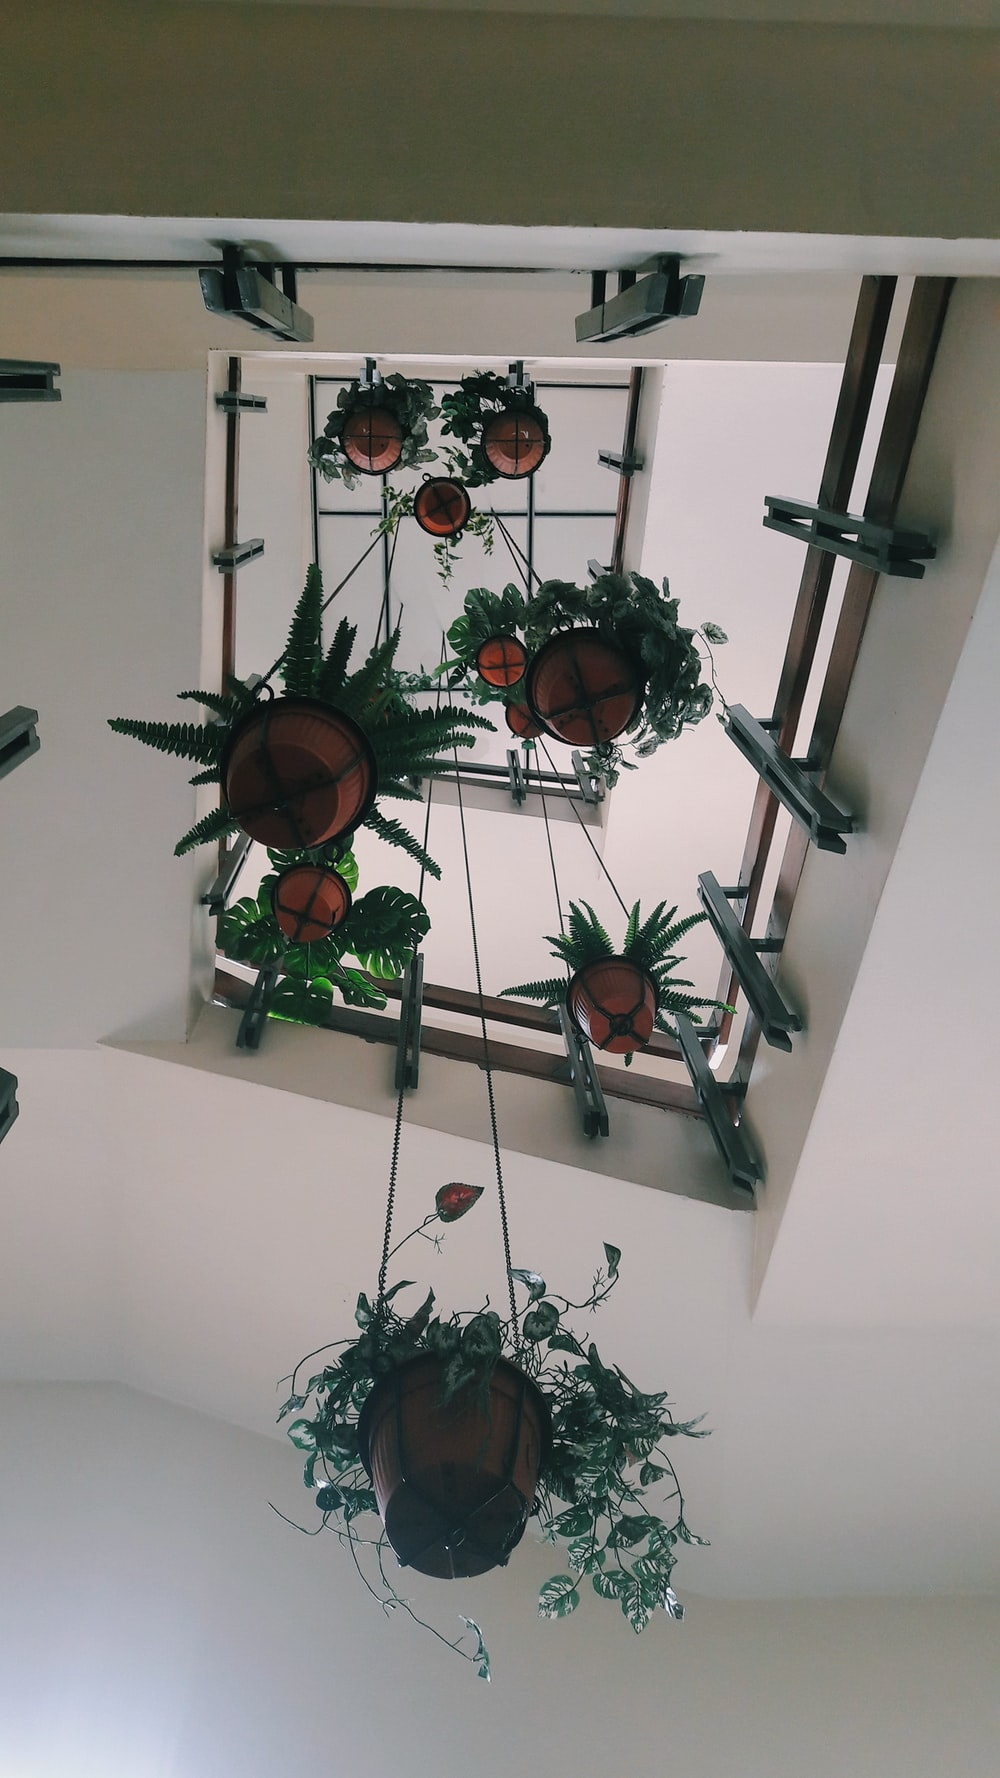 low angle photography of plant pots hanging on ceiling